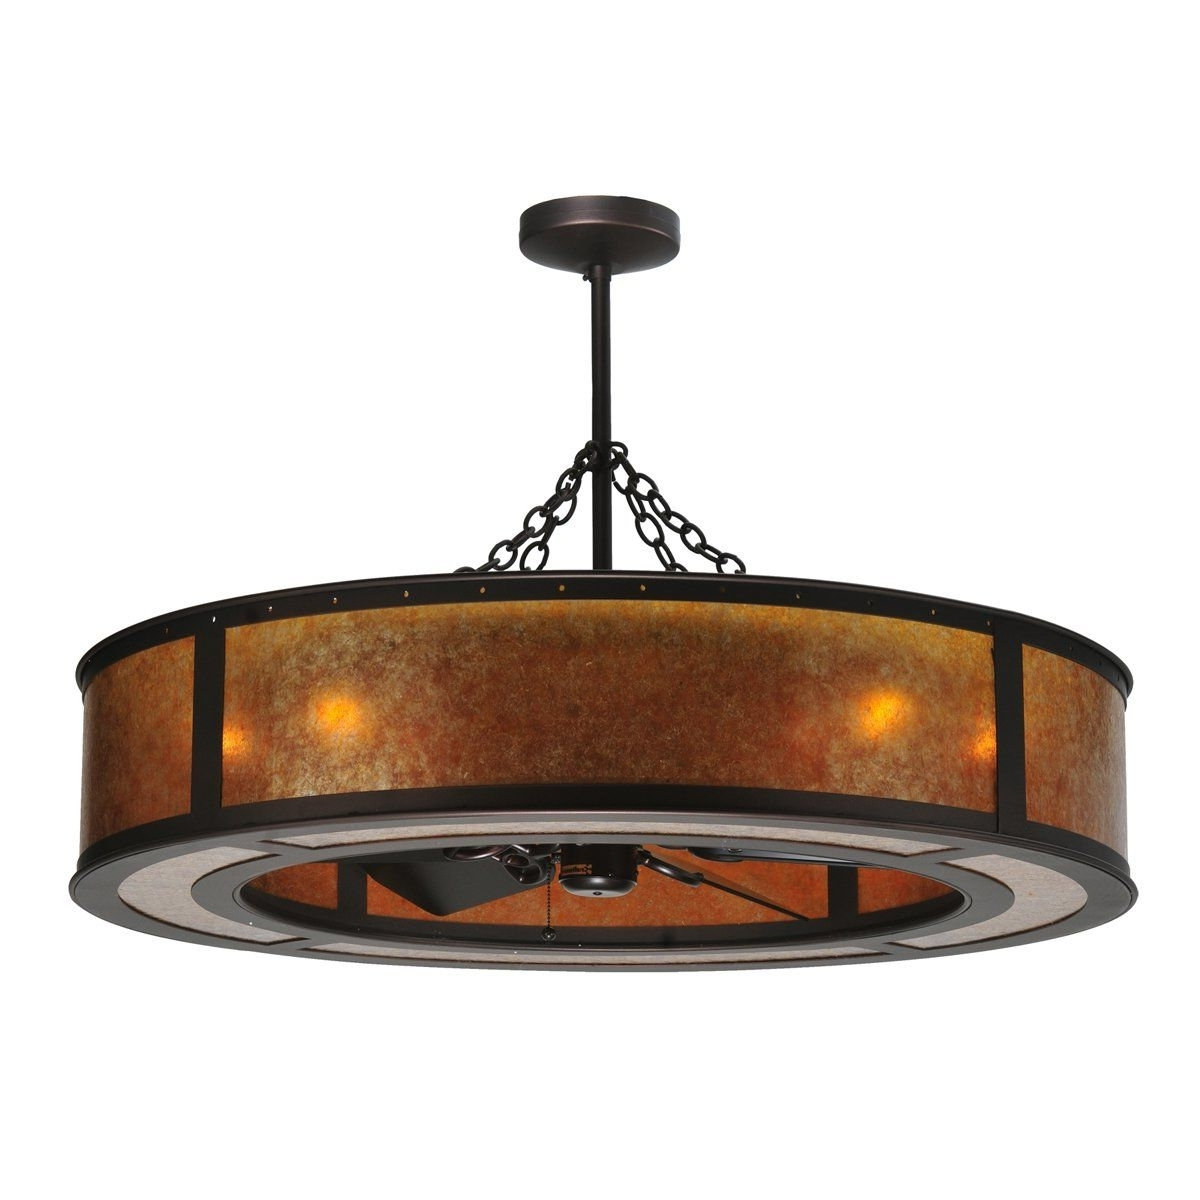 2019 Expensive Outdoor Ceiling Fans Within Meyda Tiffany Custom 108445 8 Light 44In. Smythe Craftsman (Gallery 12 of 20)